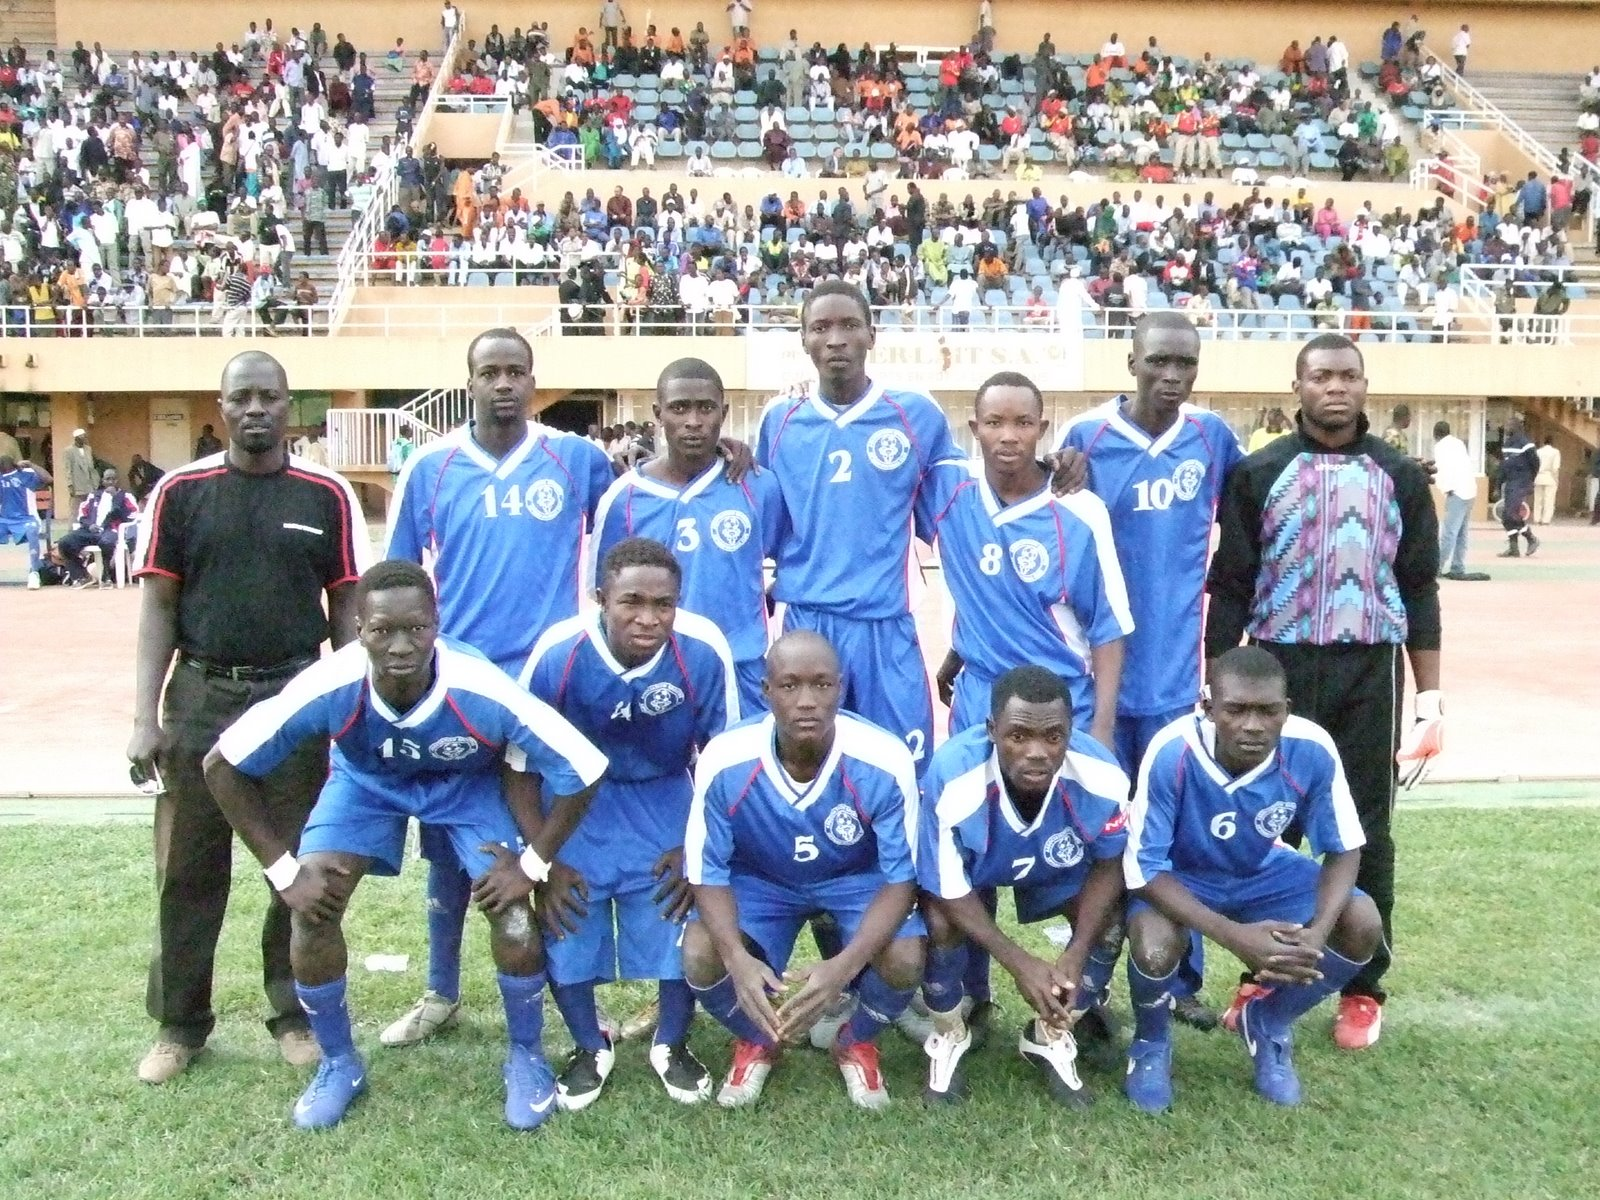 LIPTAKO FOOTBALL CLUB DE NIAMEY